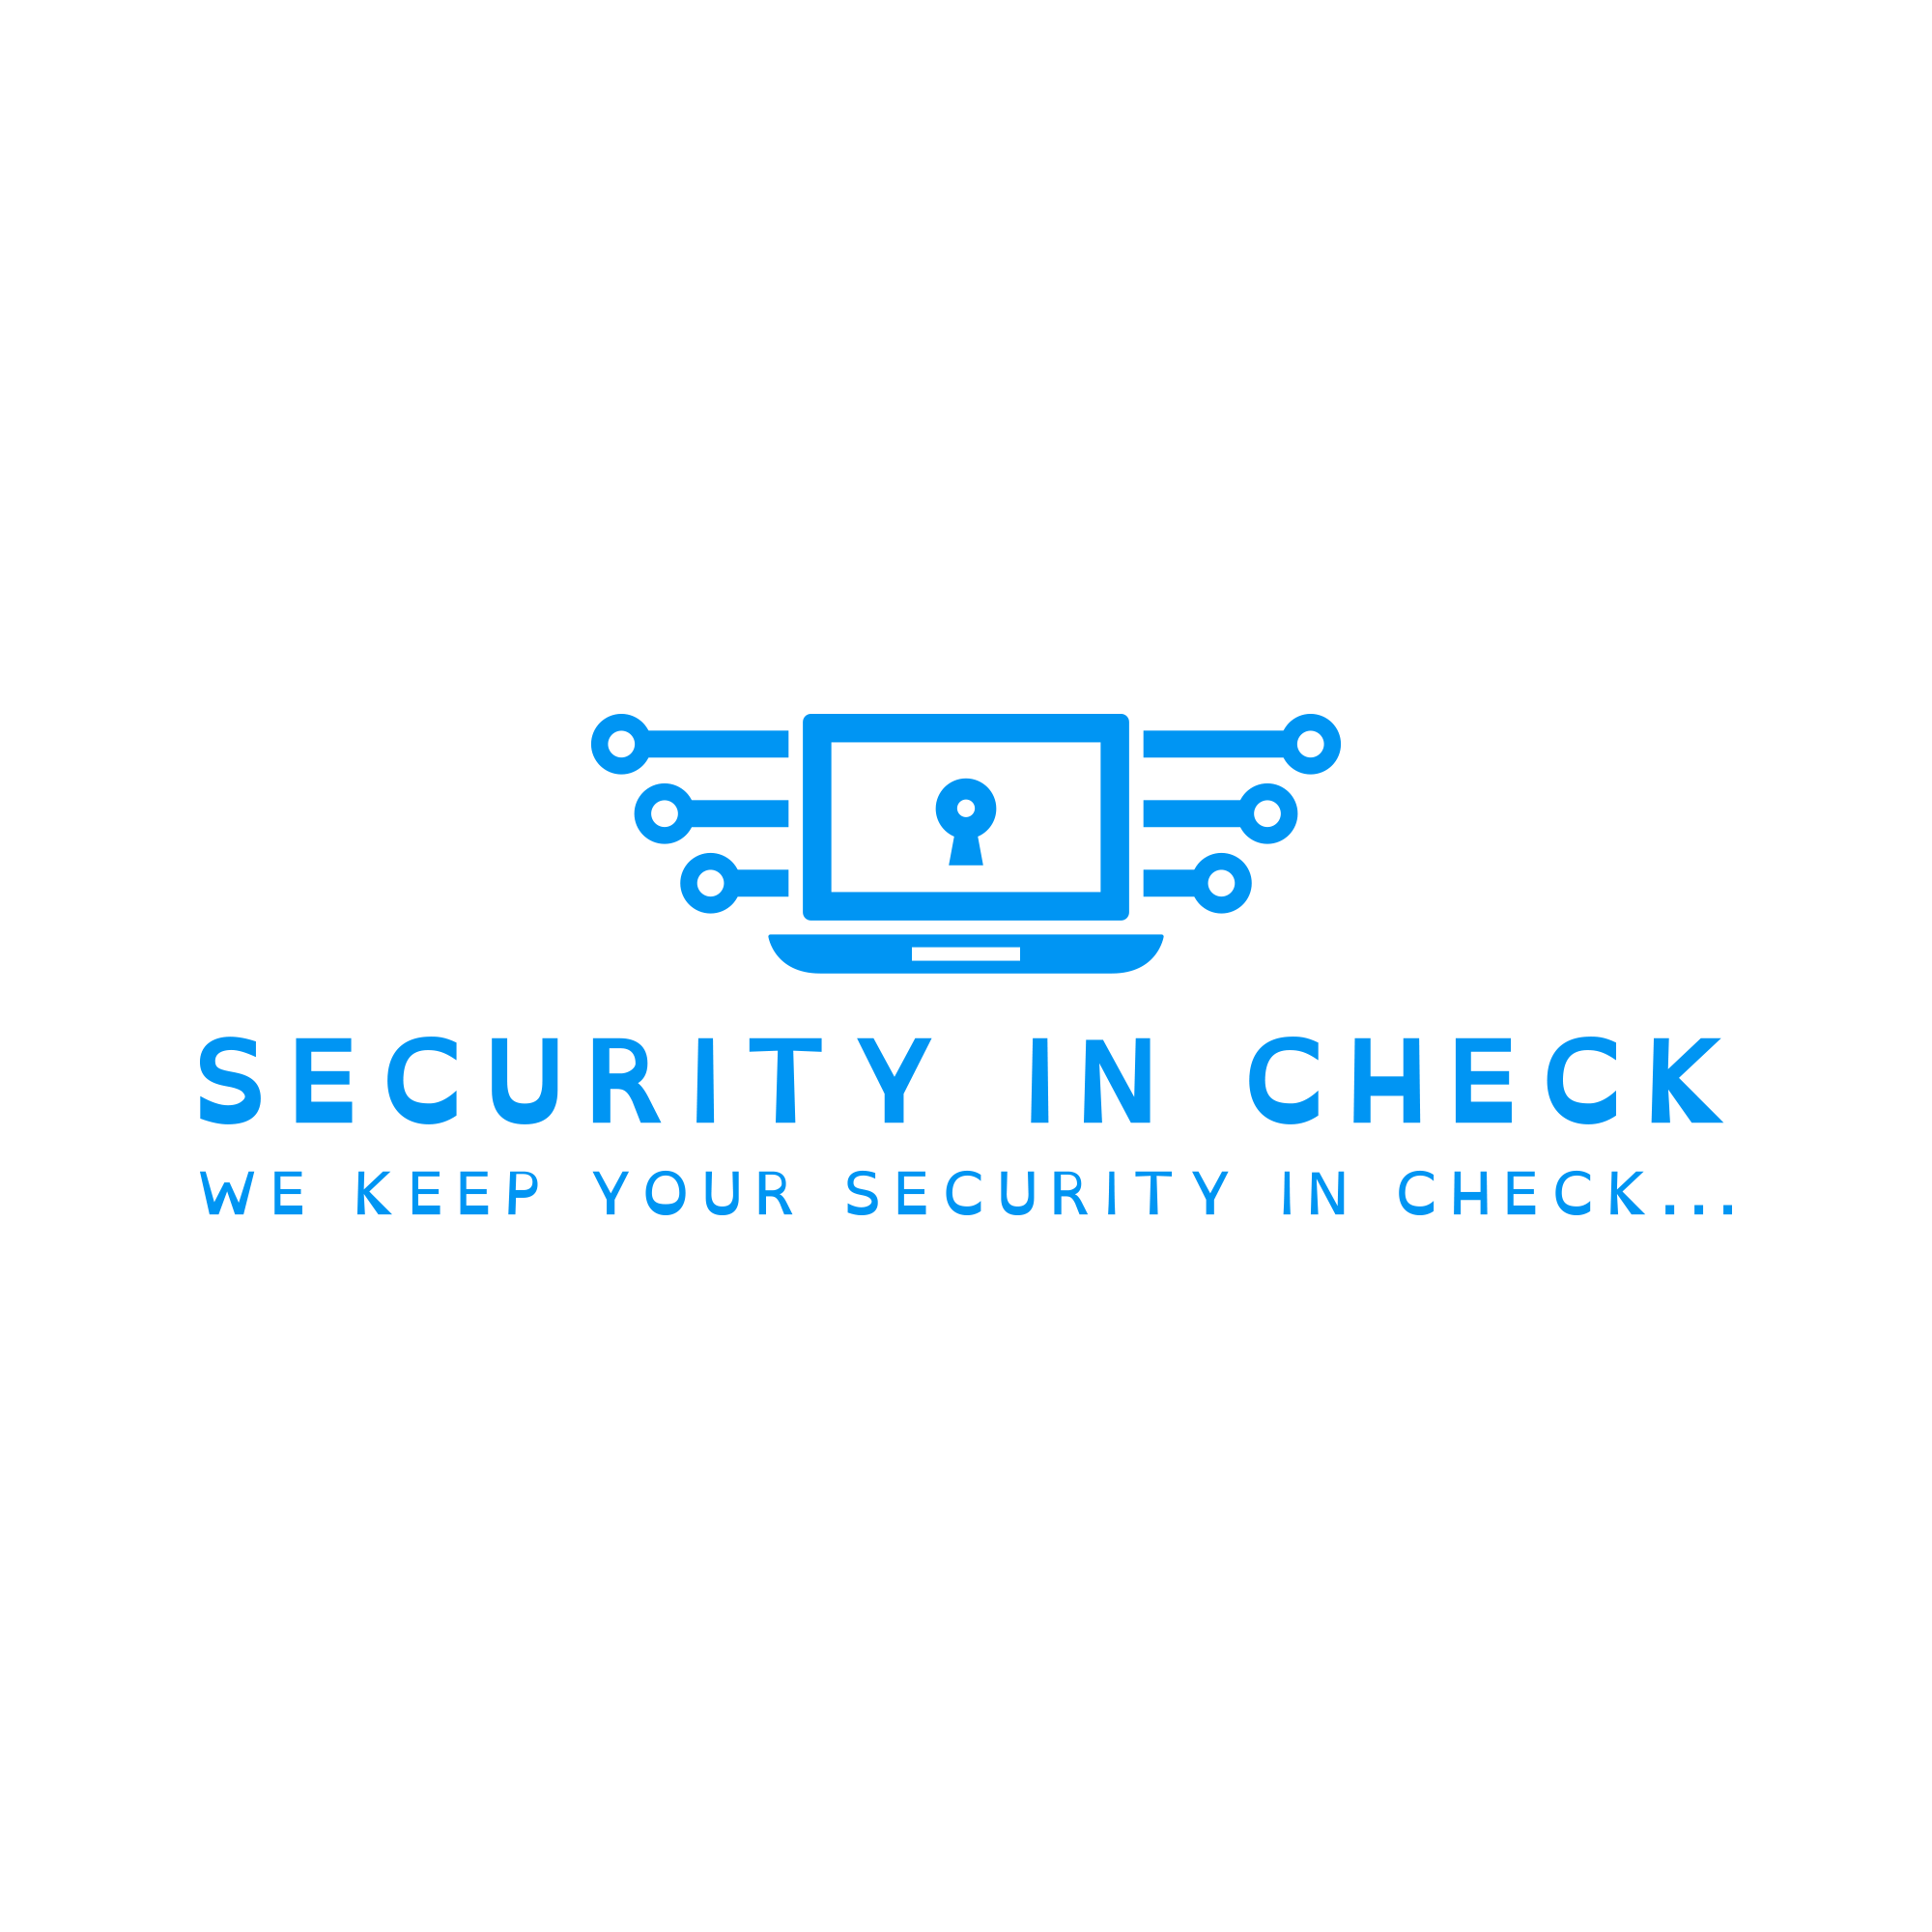 Security in Check